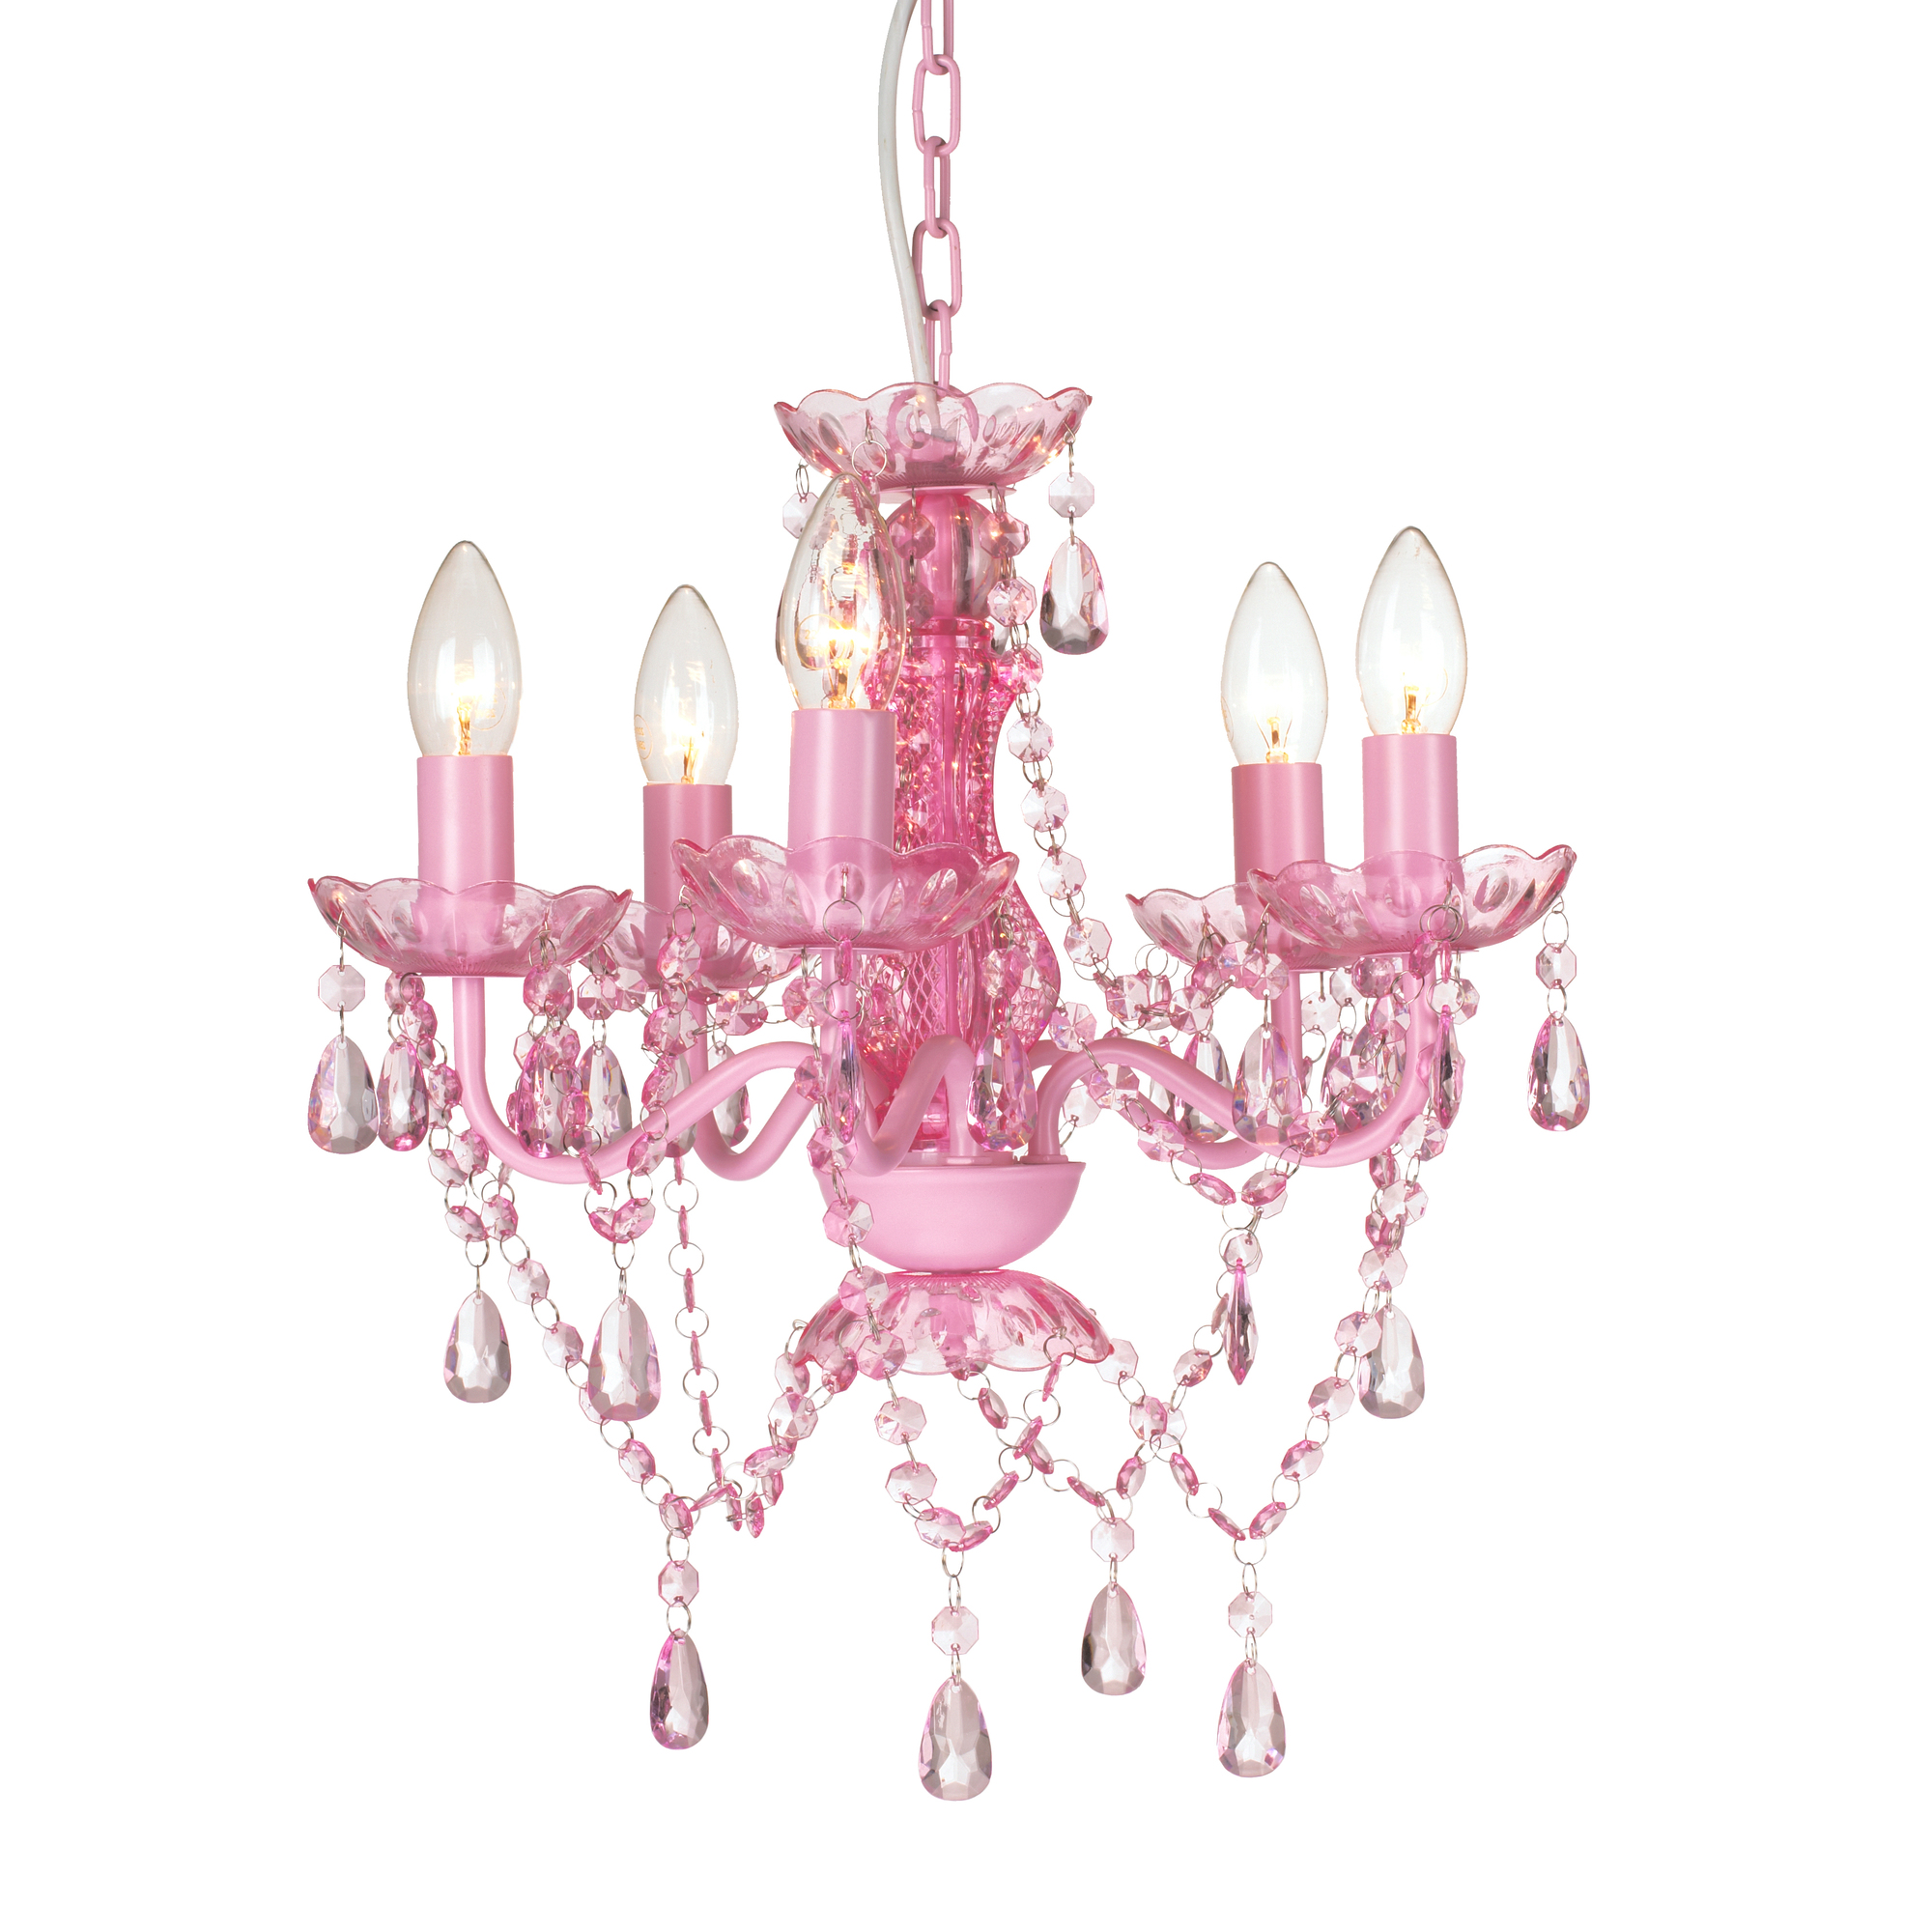 add small a round with your fixture bronze pin elegant light finish bohemian decor classy an touch this crystal chandelier features home to antique